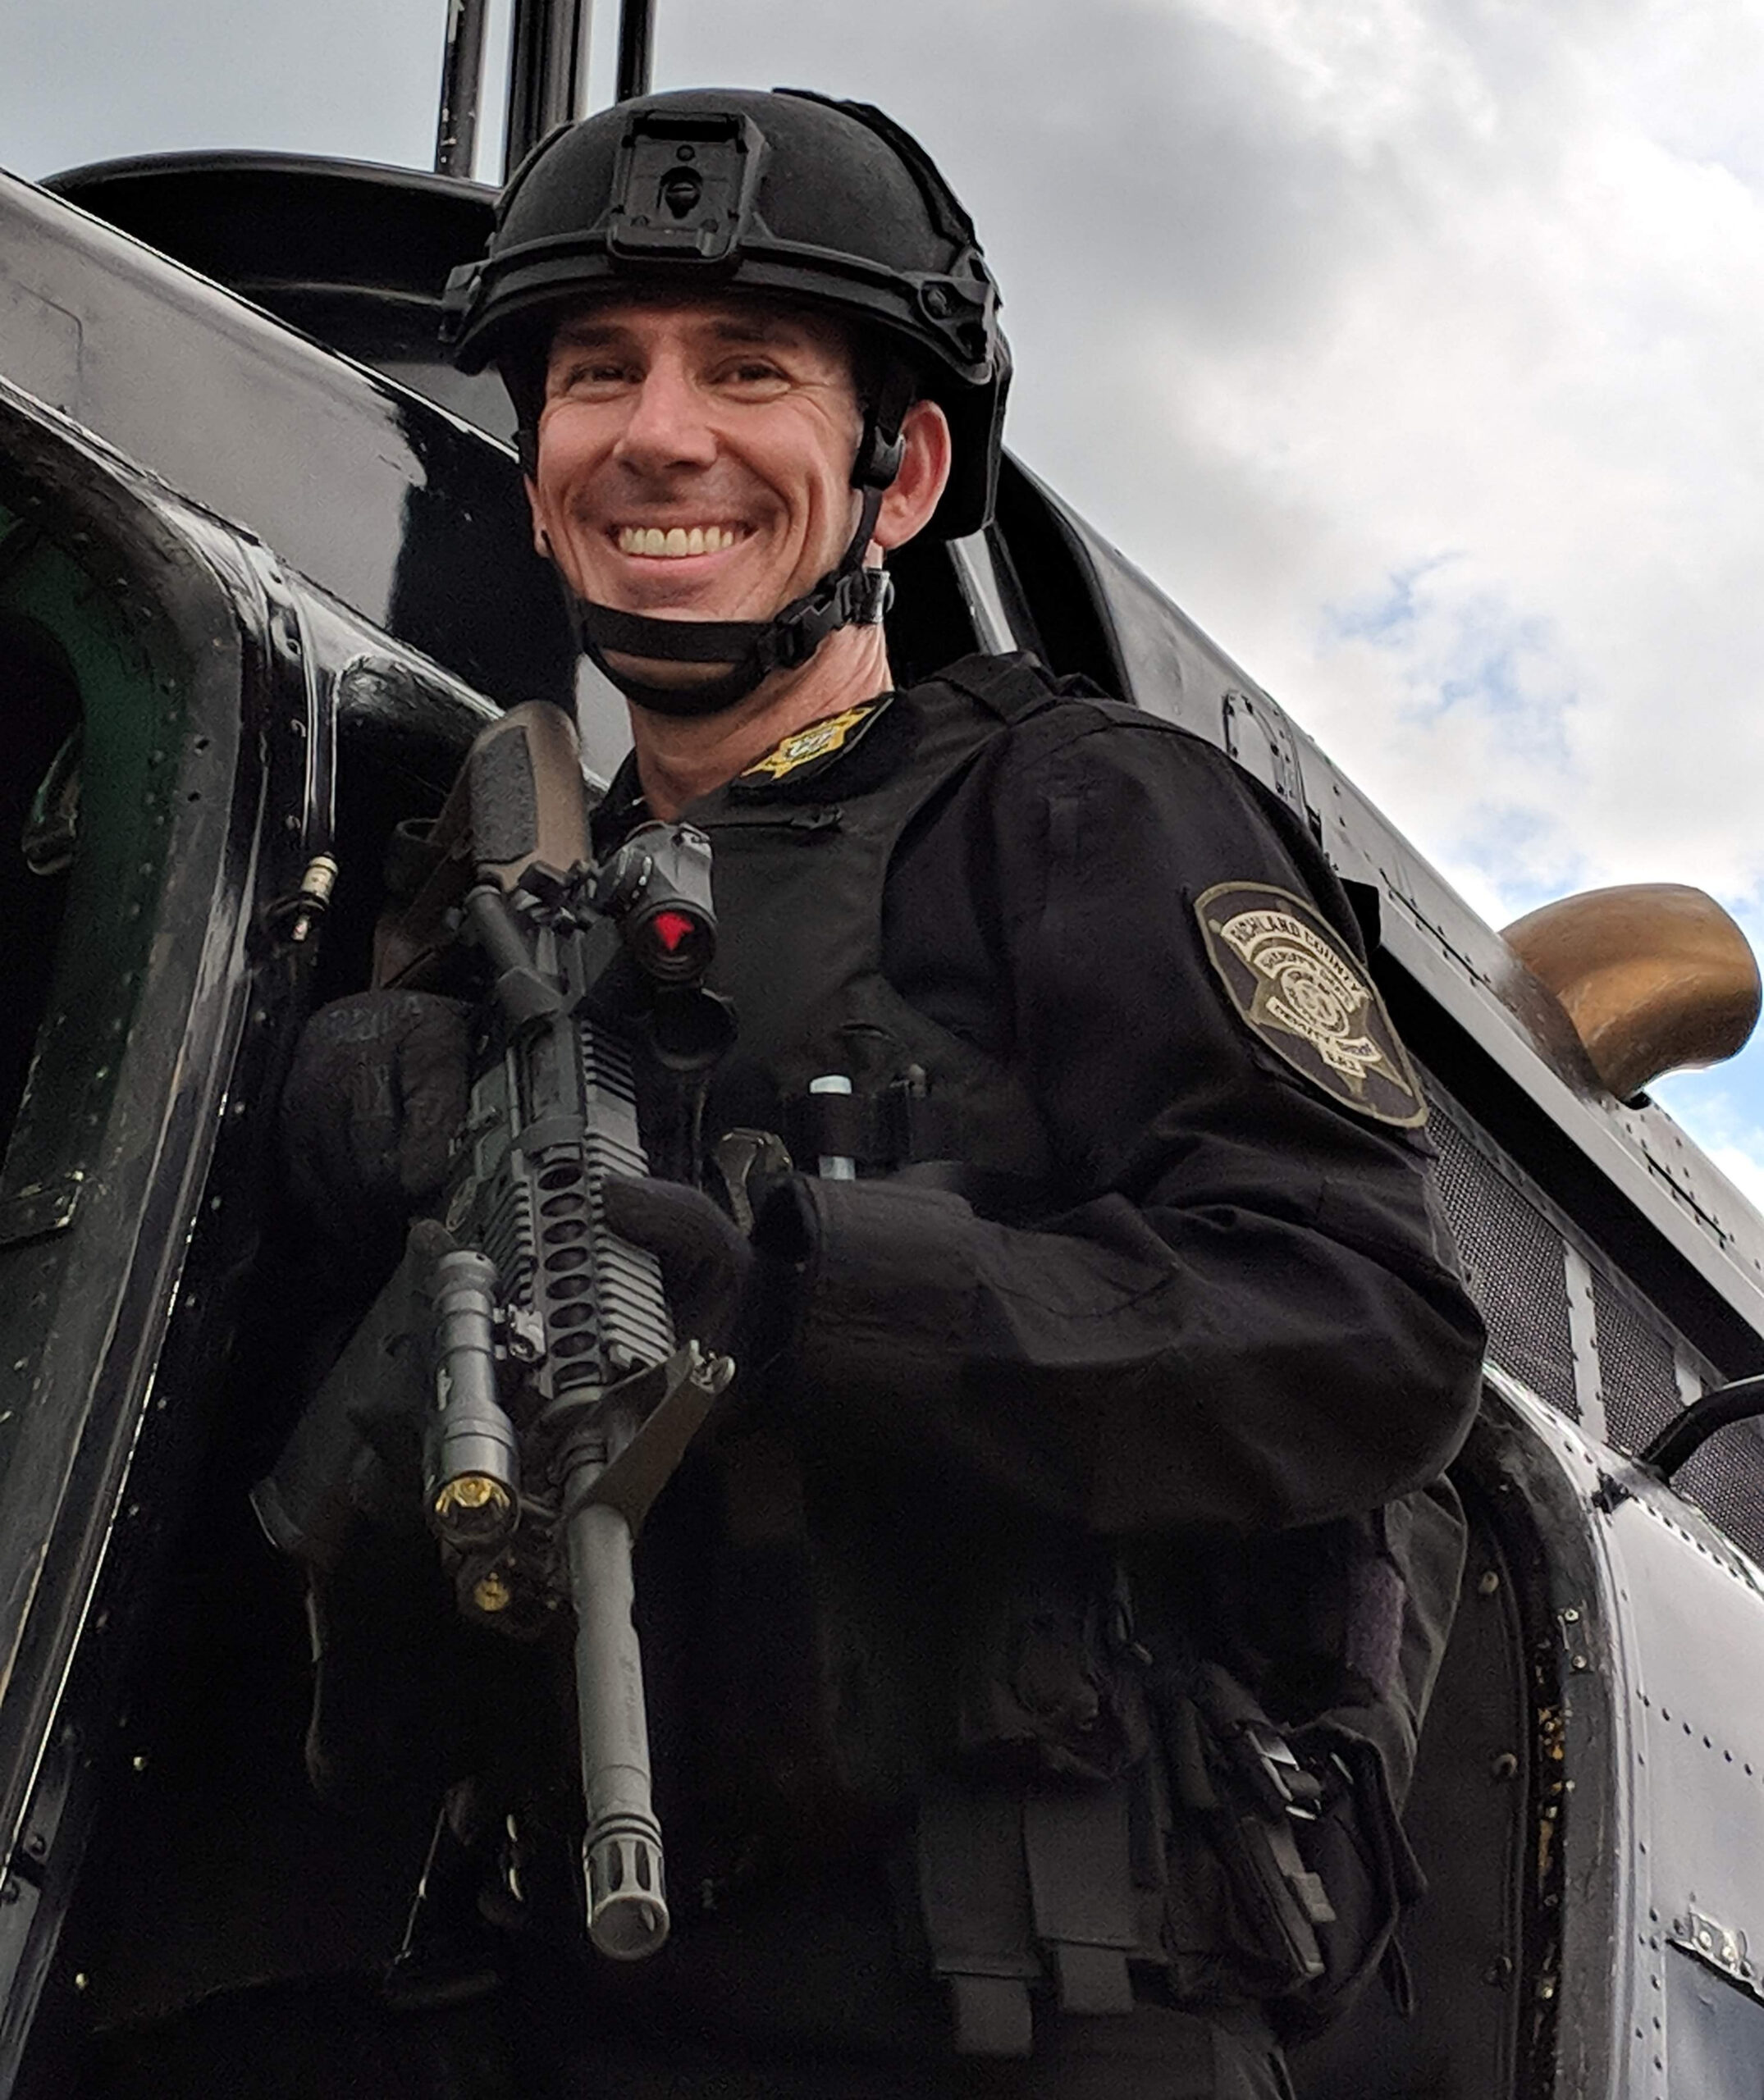 Reserve Deputy with rifle